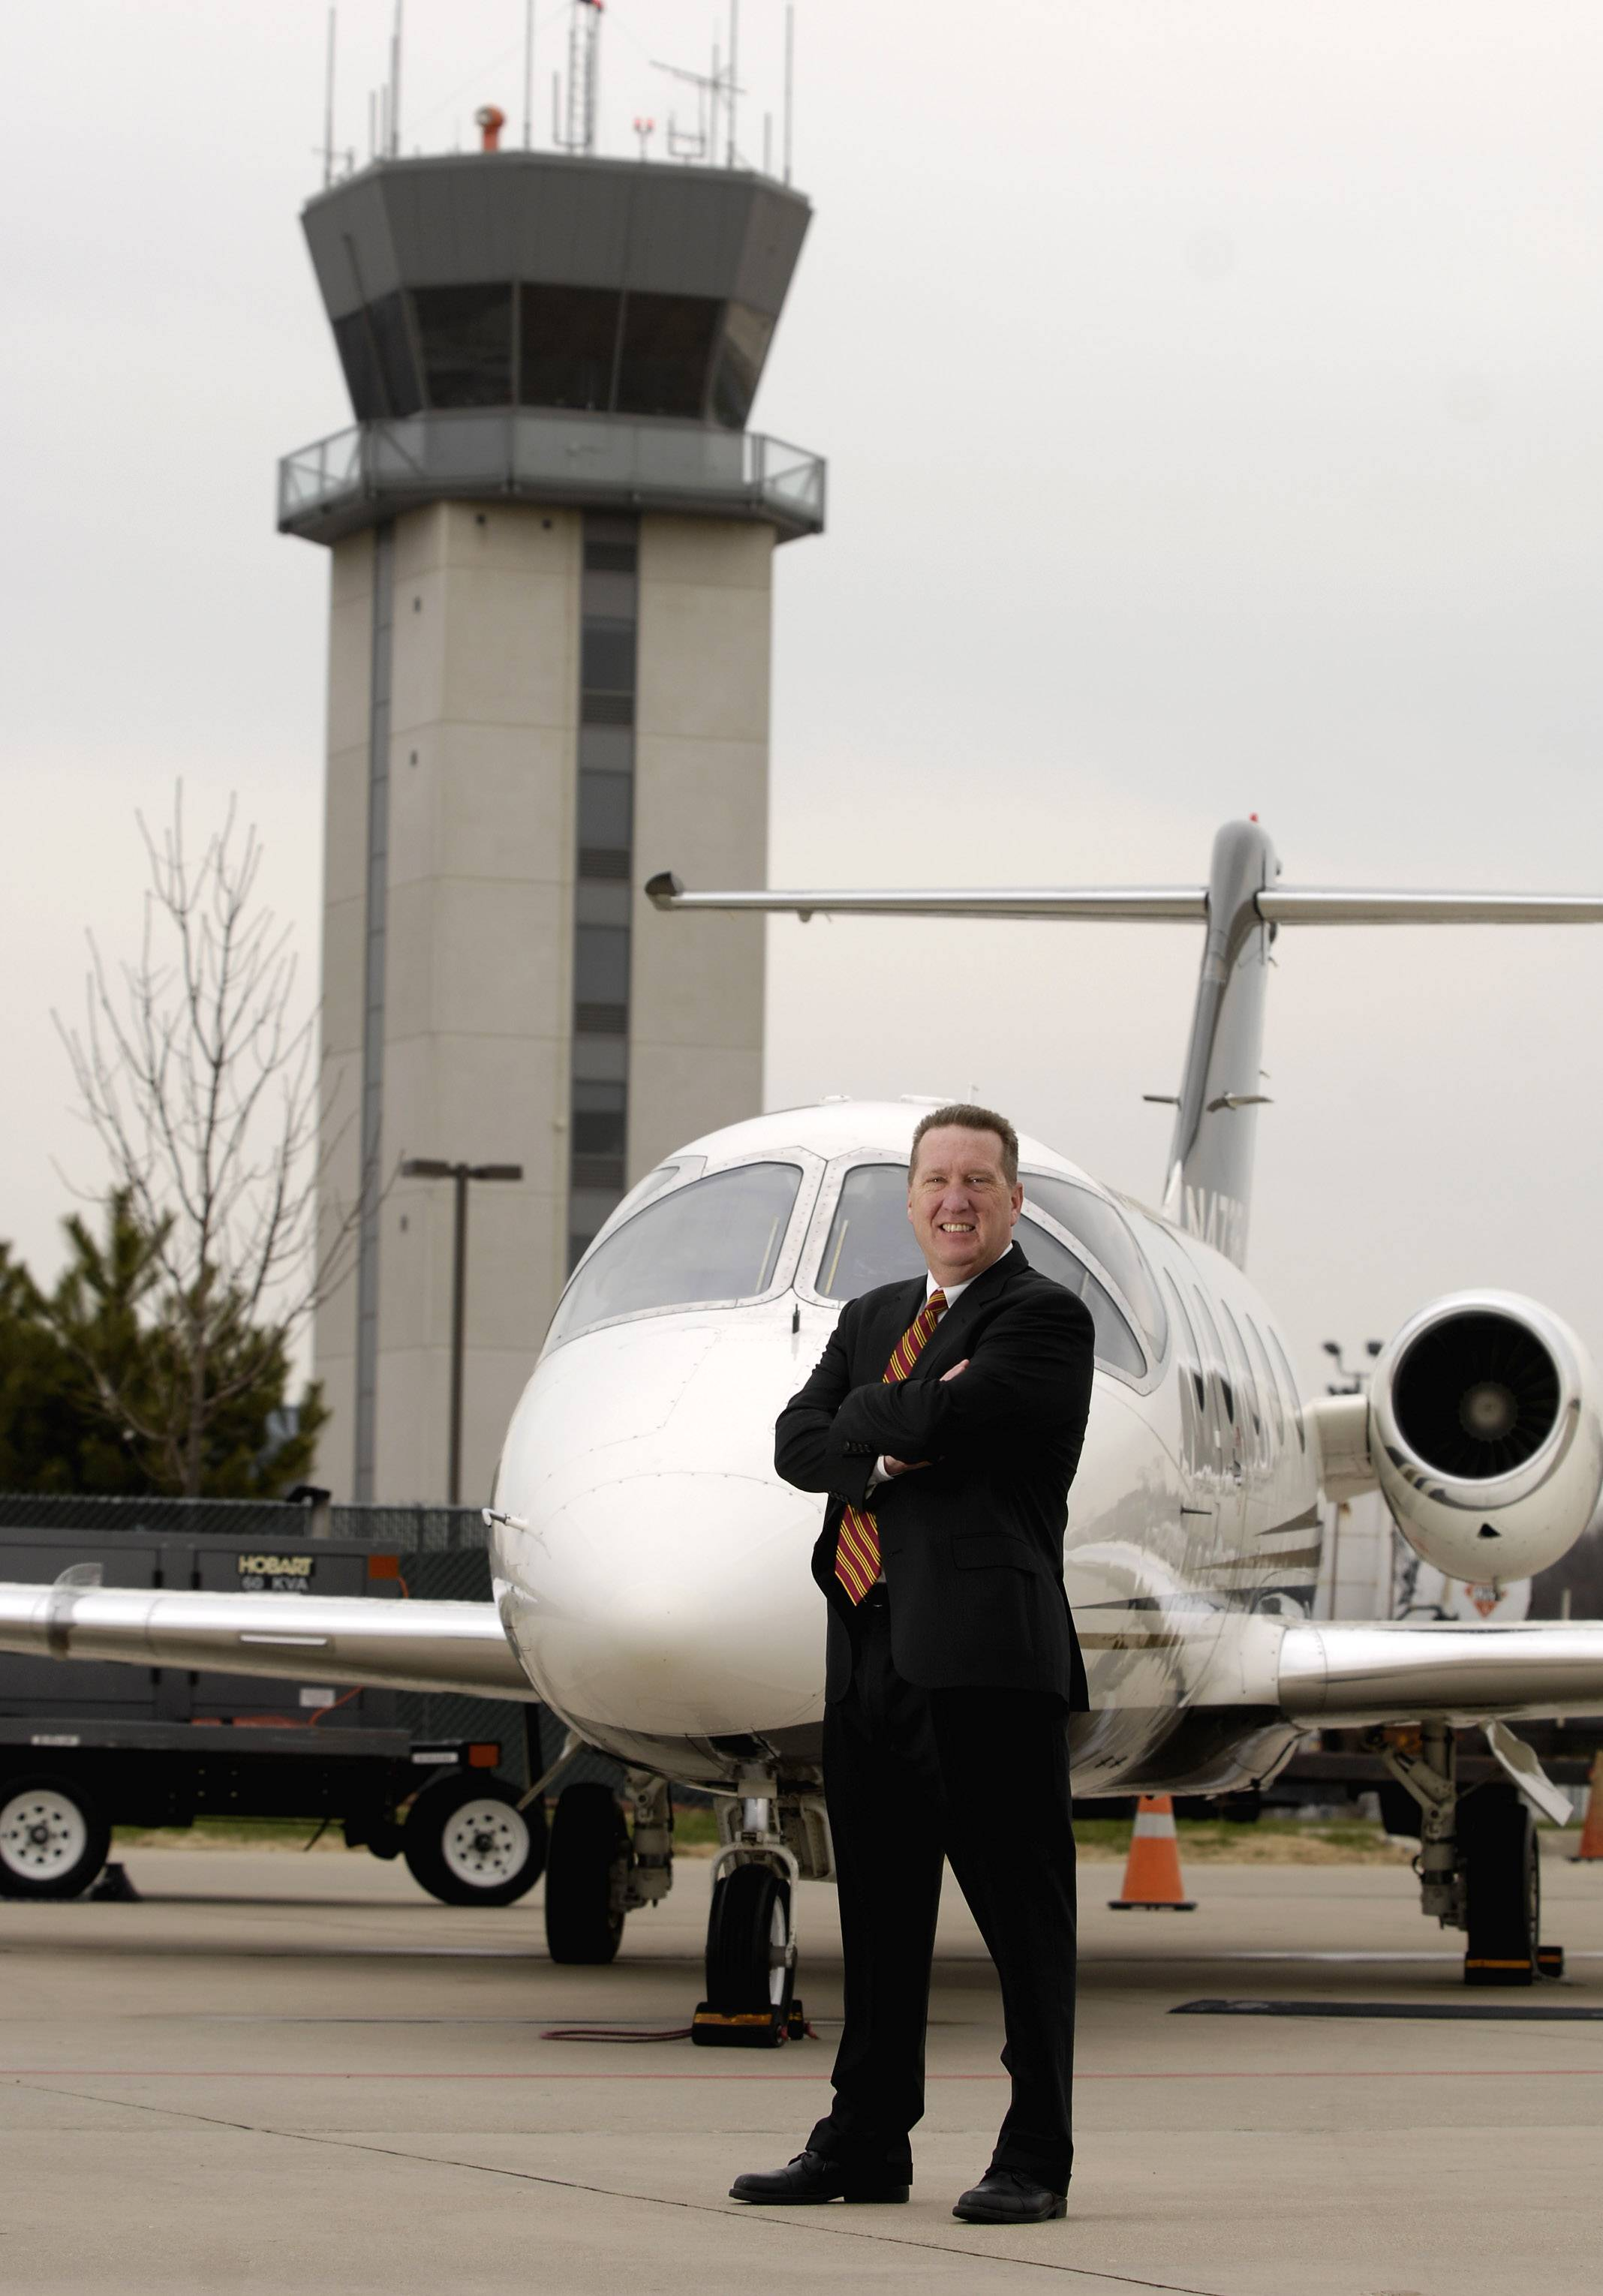 Dennis G. Rouleau in 2011 at Chicago Executive Airport.